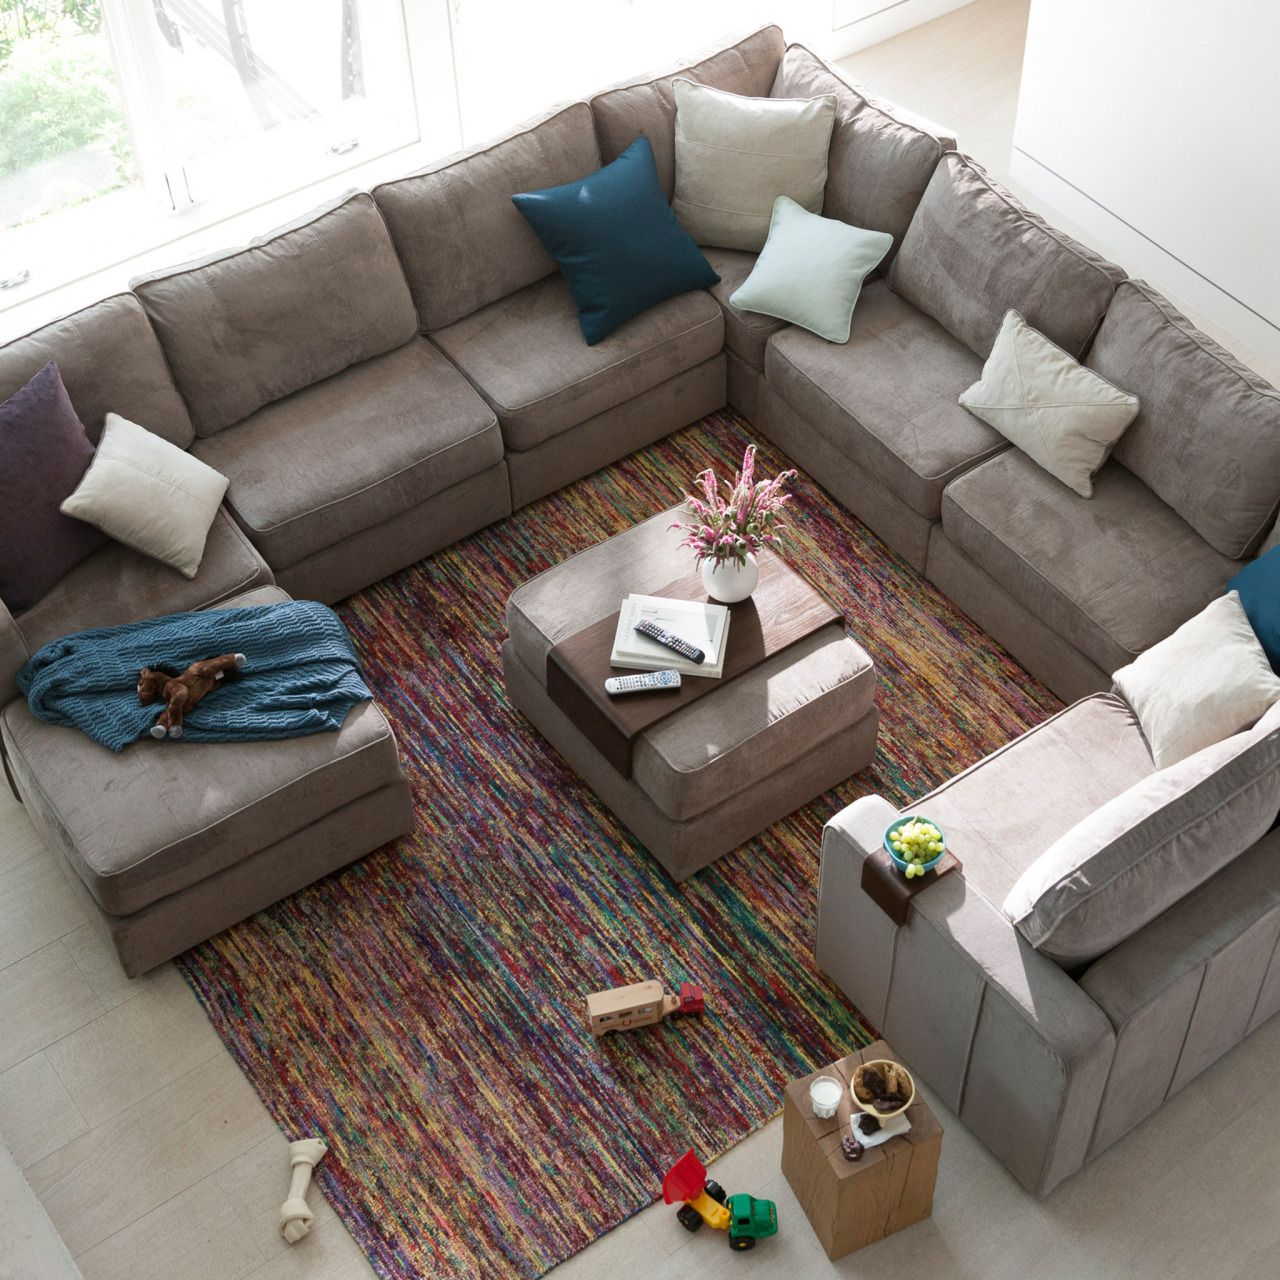 lovesac we make sactionals the most adaptable couch in the entire world that grows with you in your ever changing life we are lovesac - Lovesac Sofa